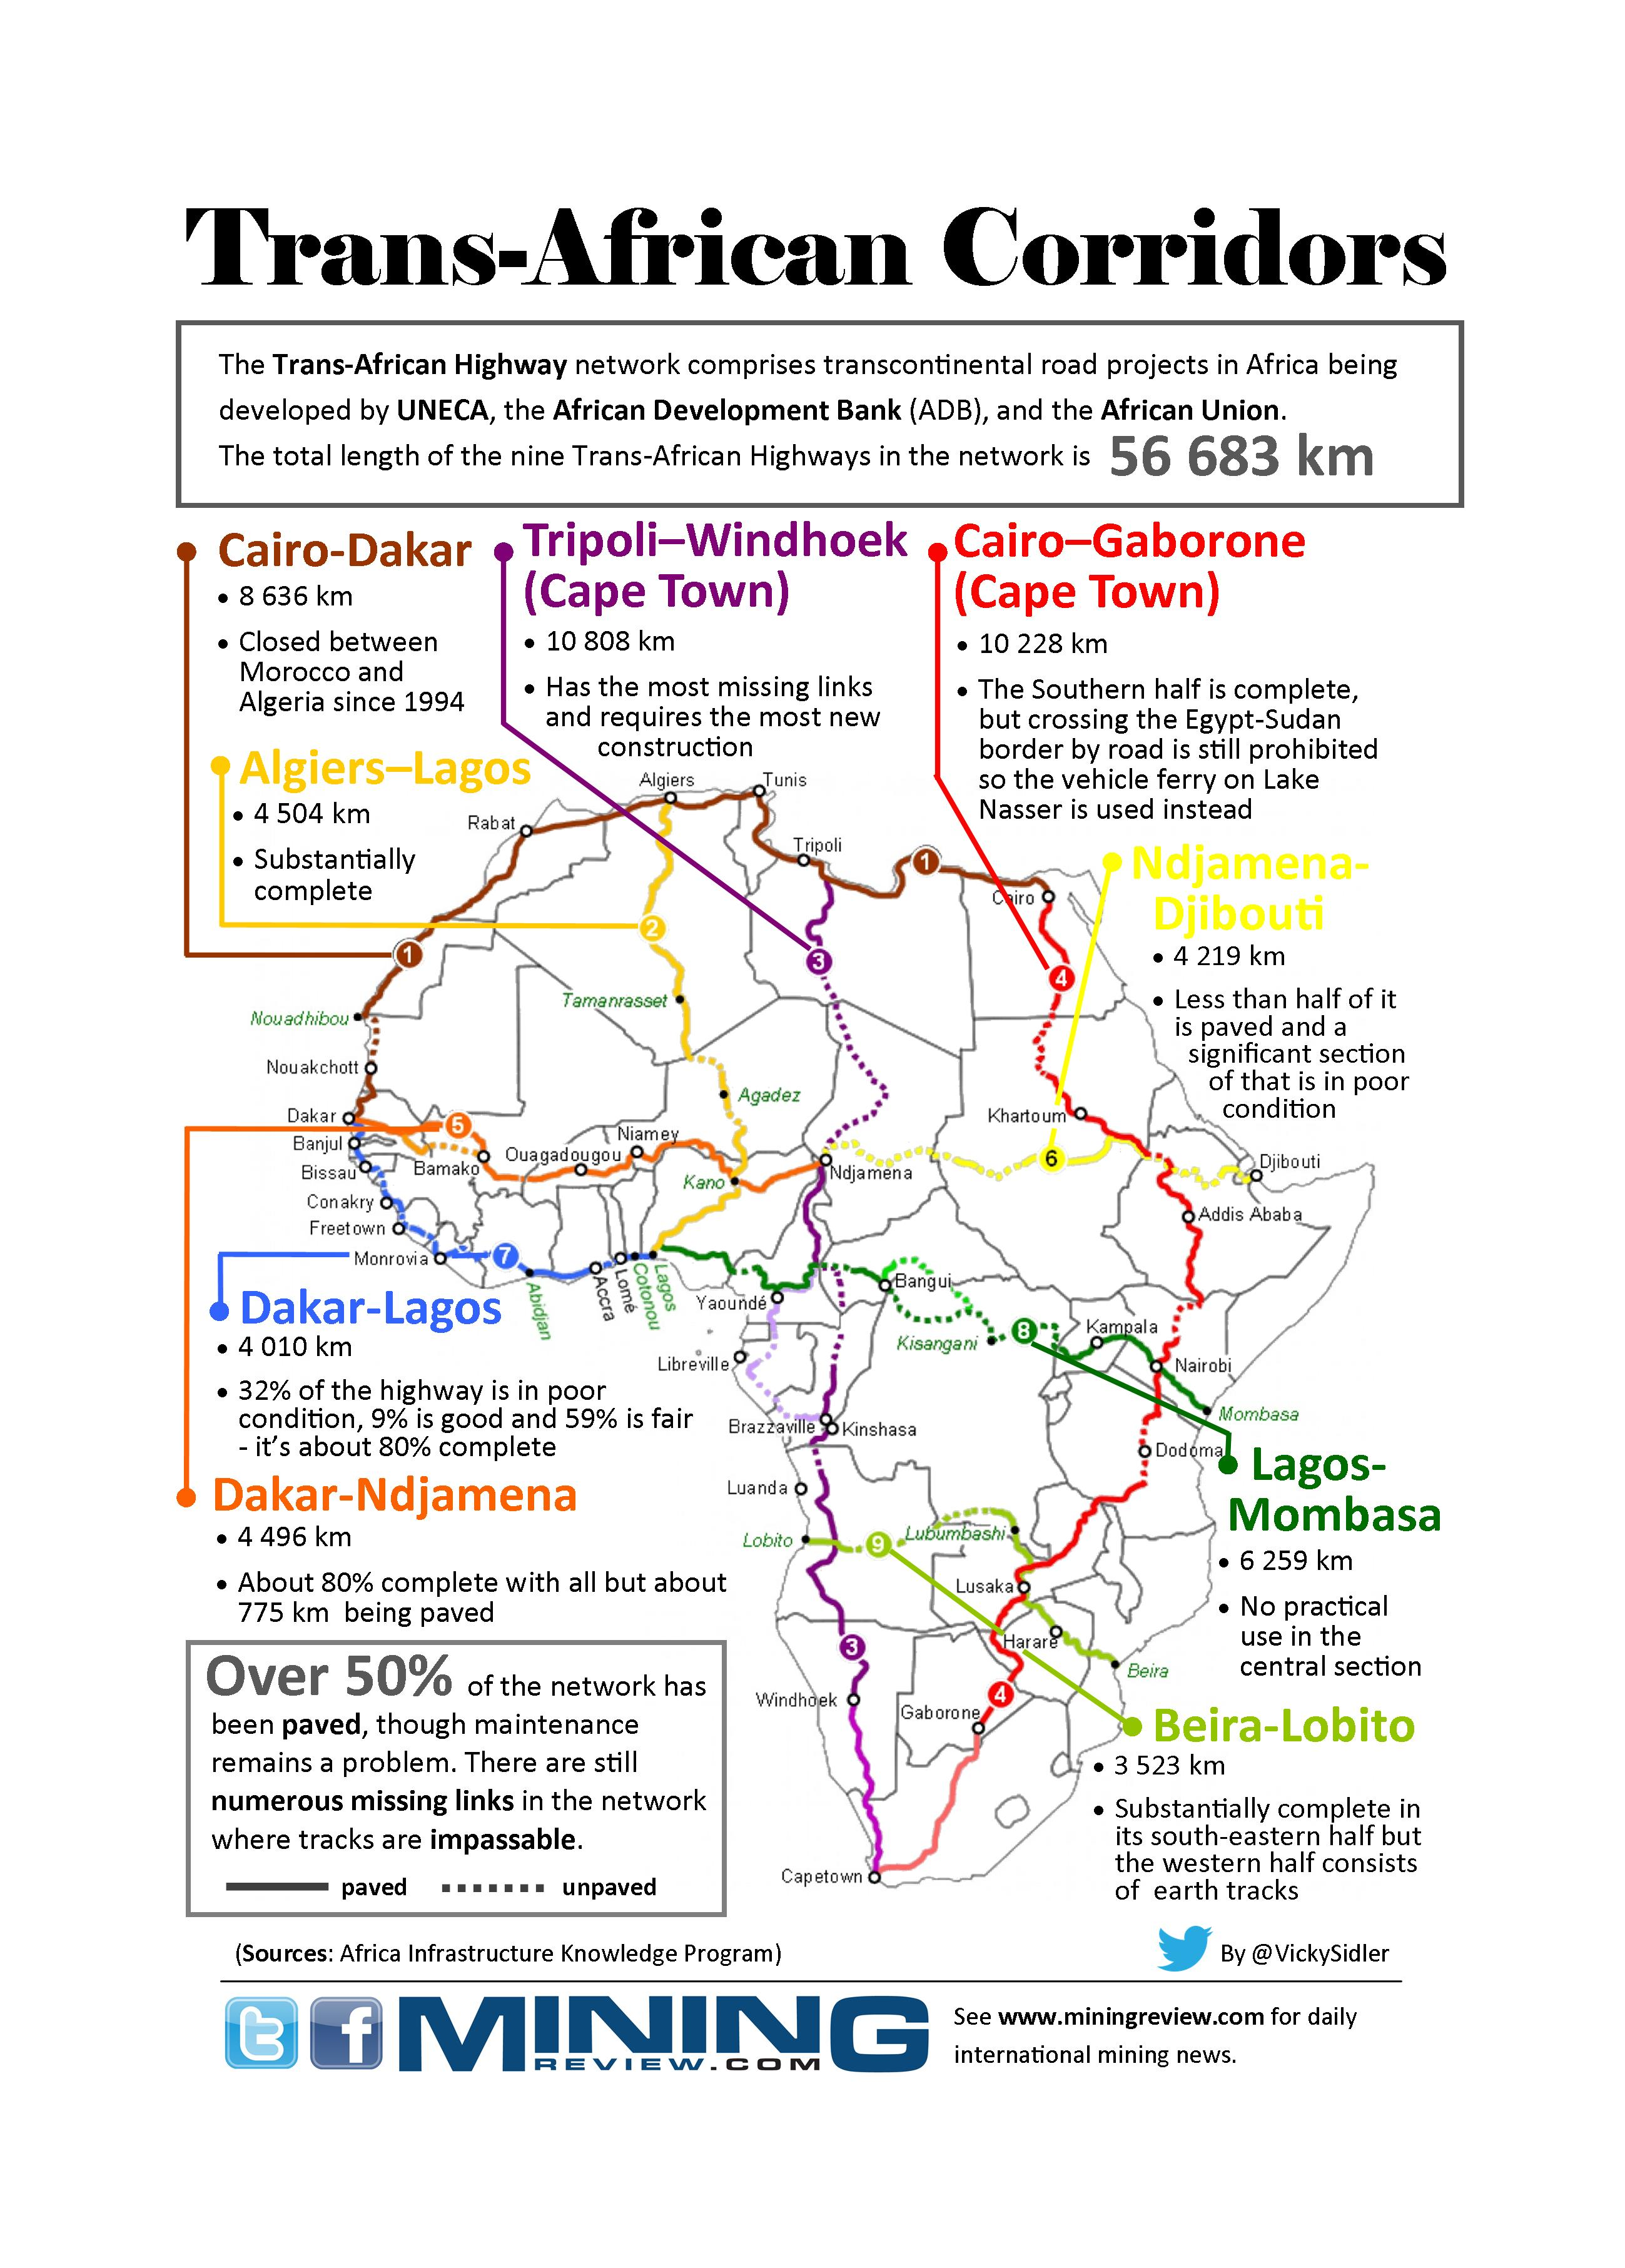 Trans African Corridors infographic